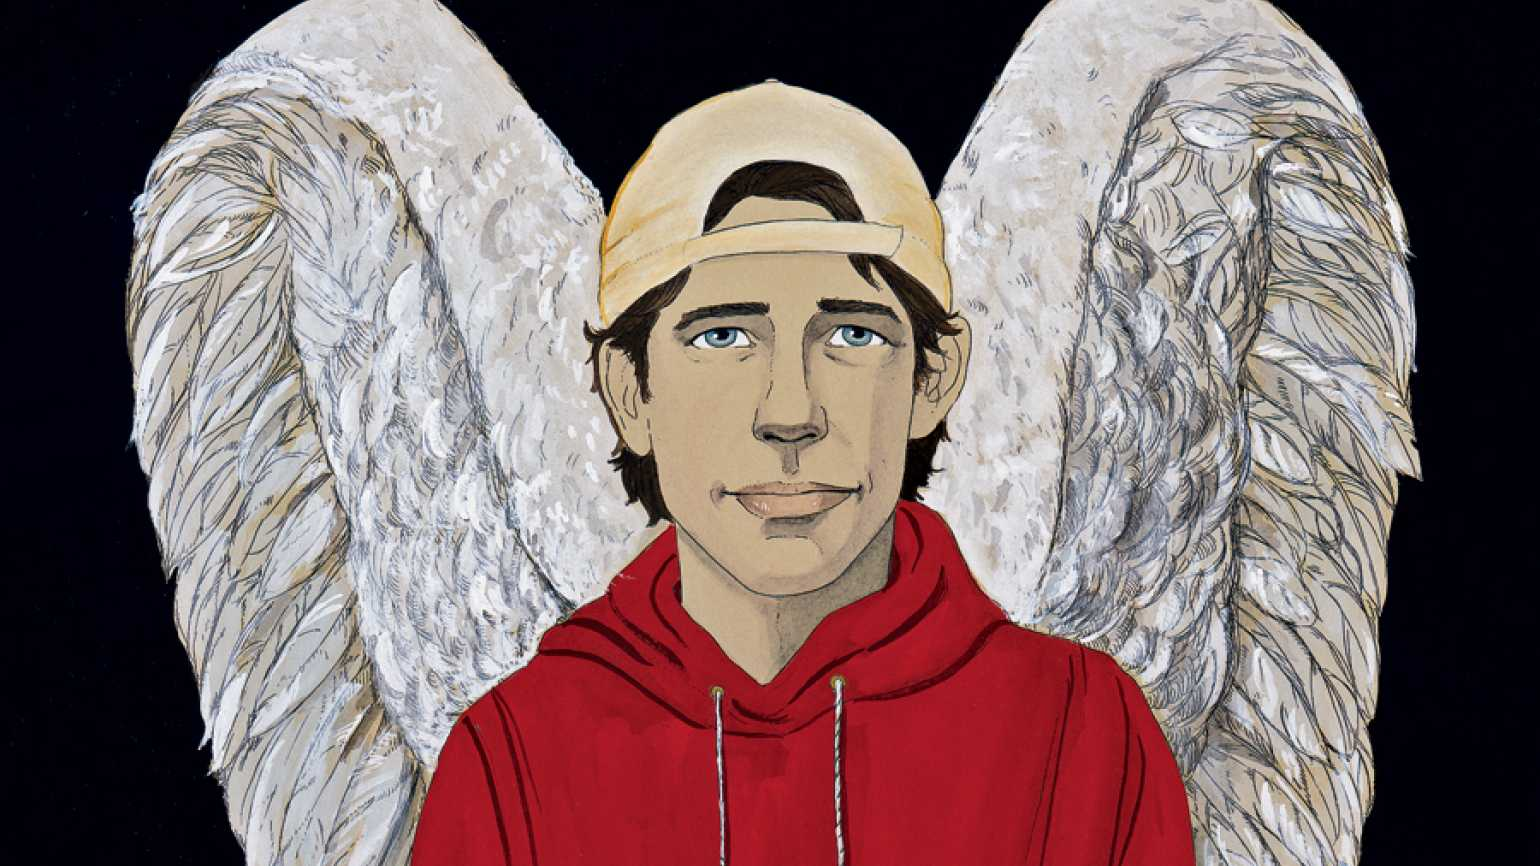 An artist's rendering of a teenager with angel wings and a red hoodie